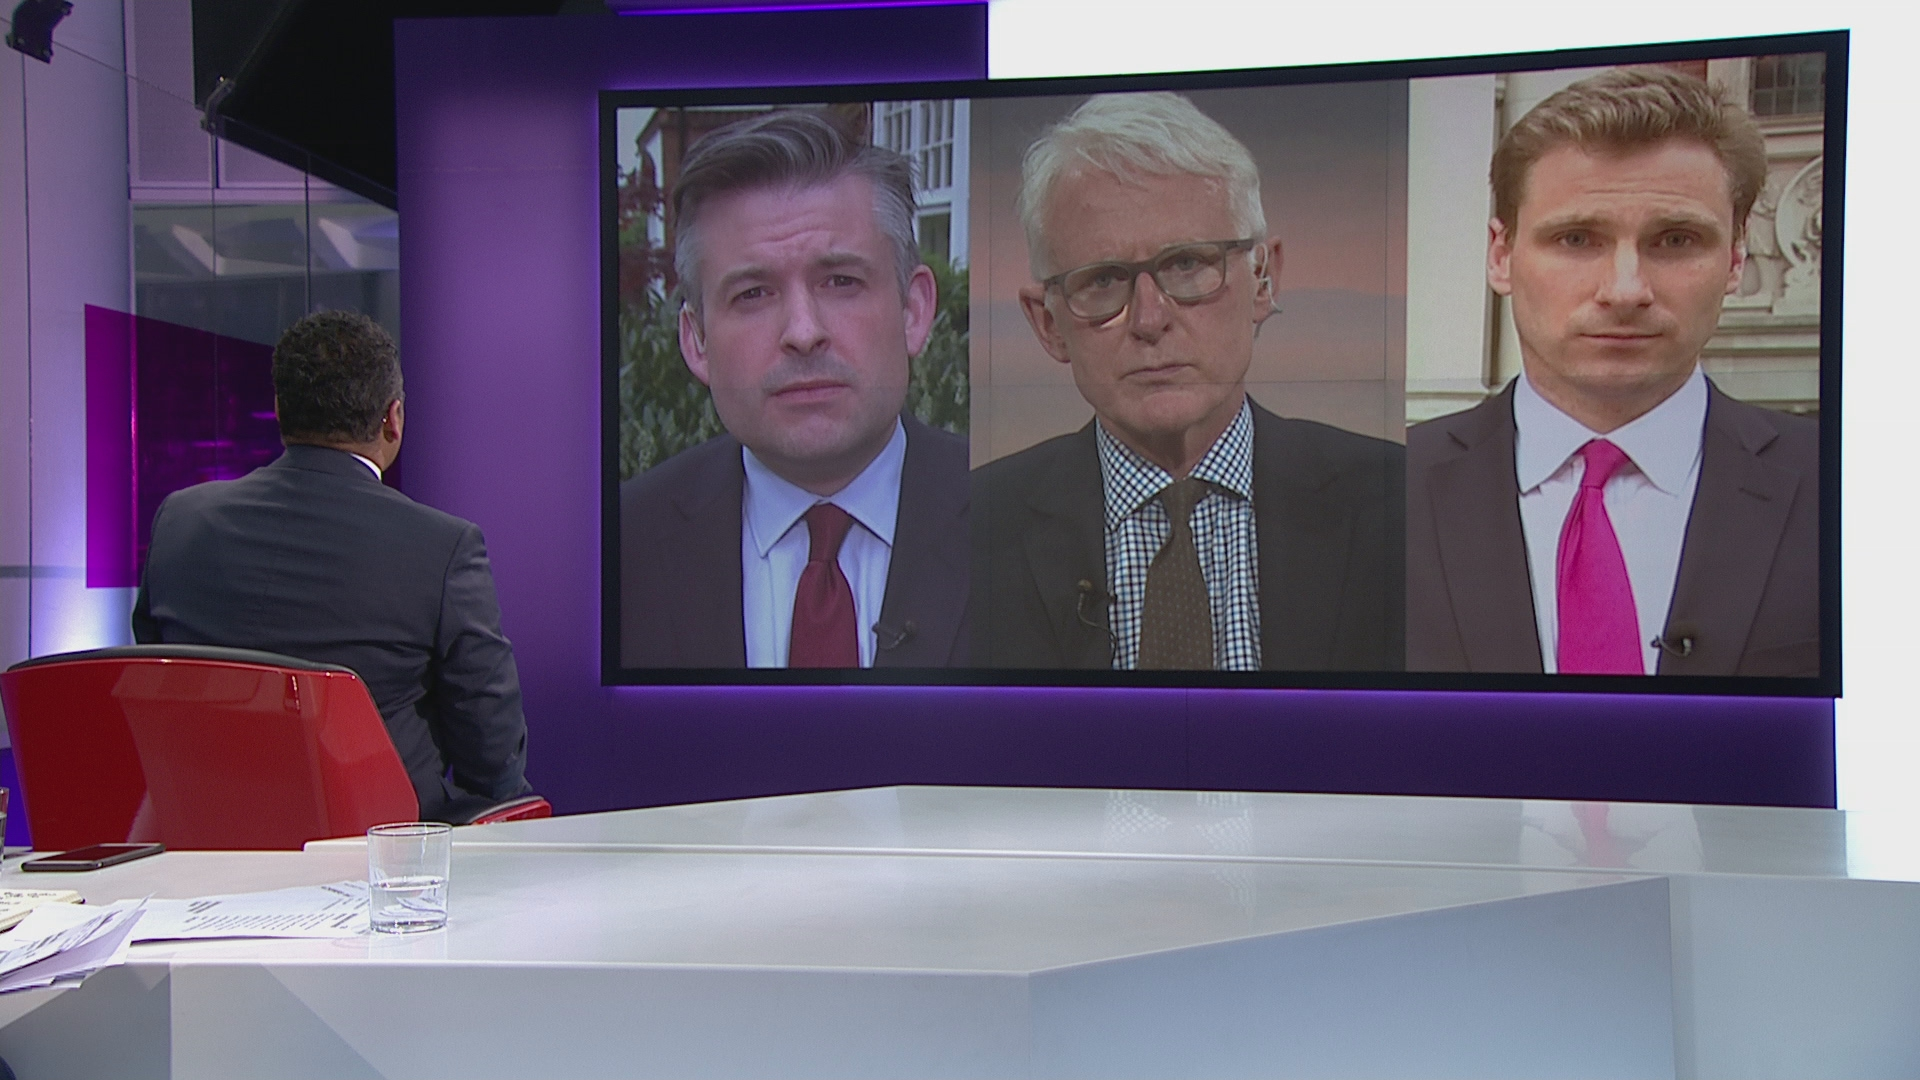 NHS Debate: Jonathan Ashworth, Norman Lamb, Chris Philp